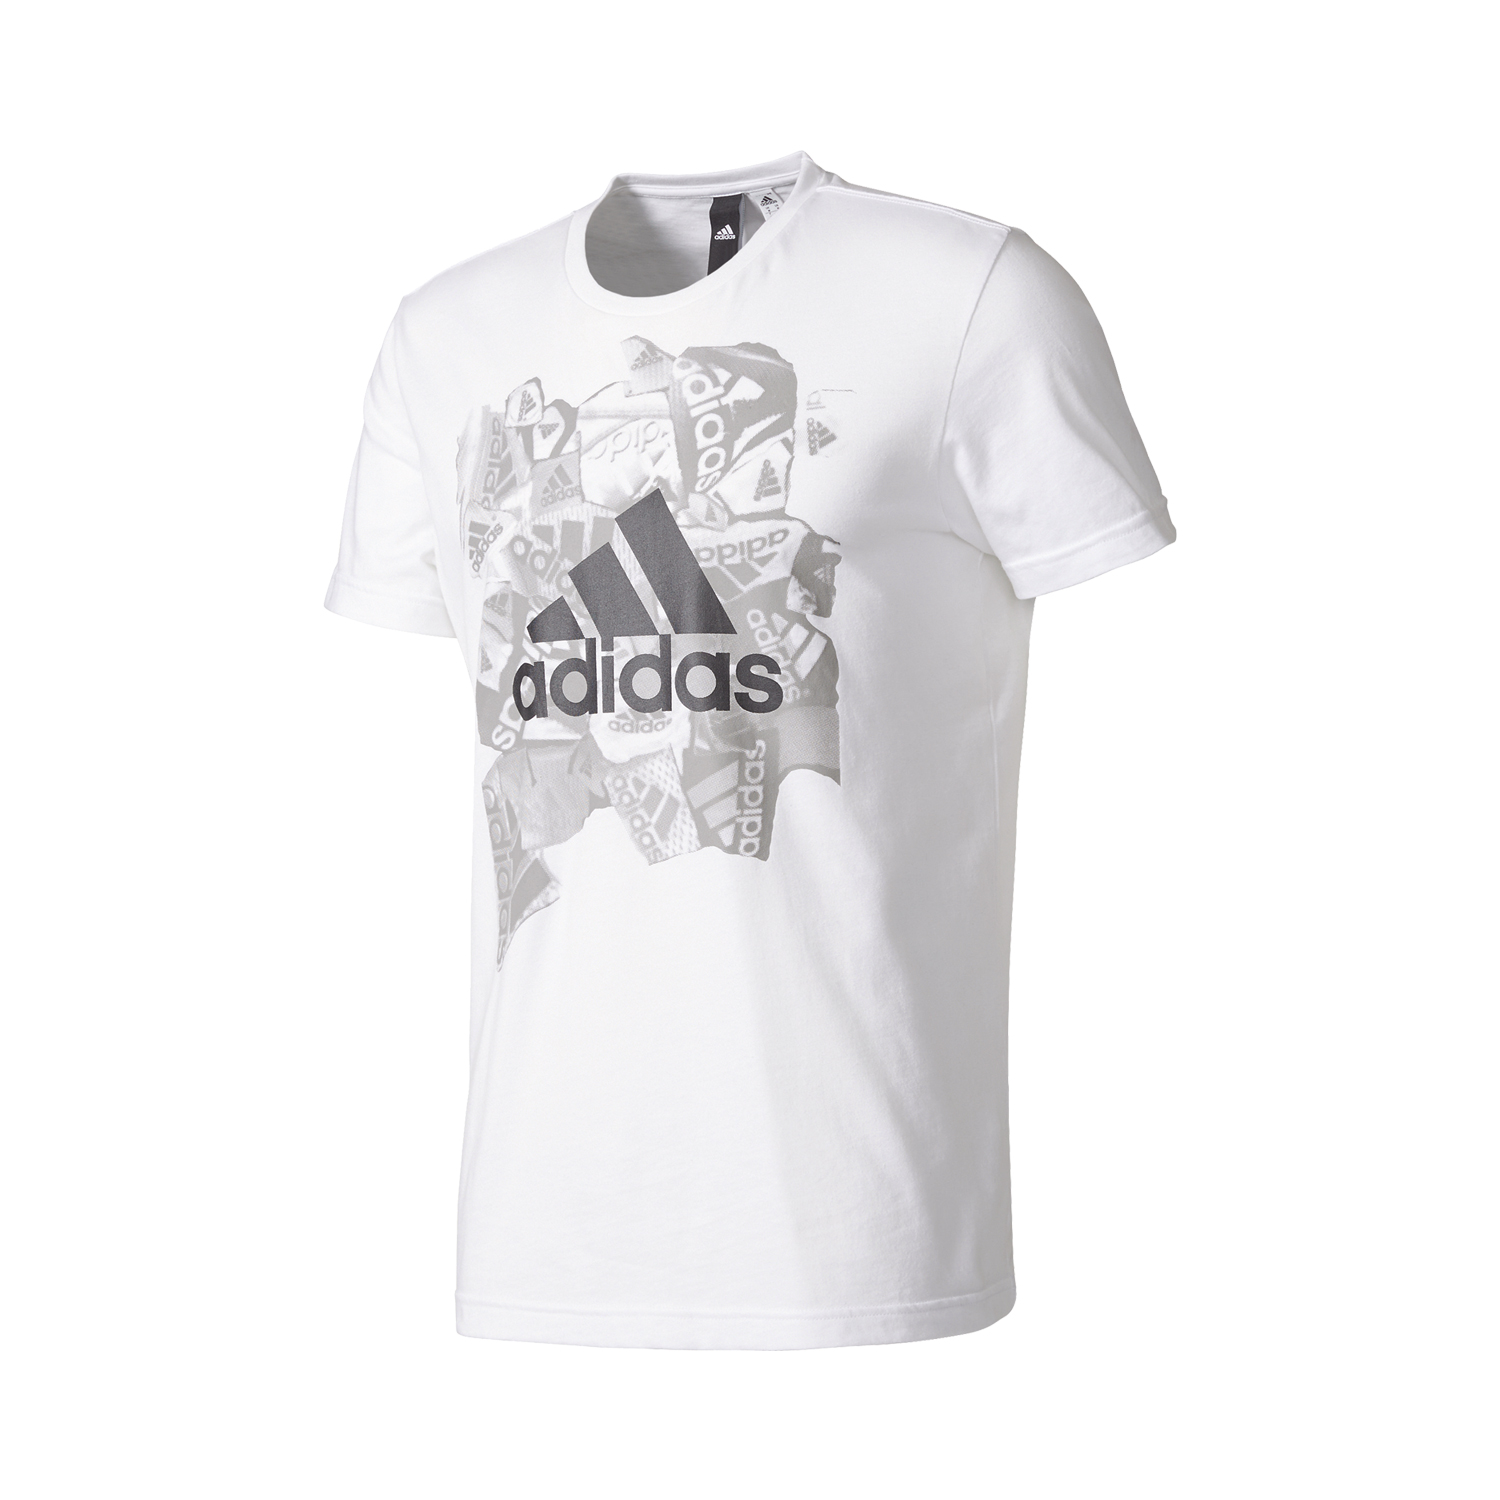 adidas badge of sports herren t shirt herren bekleidung t. Black Bedroom Furniture Sets. Home Design Ideas